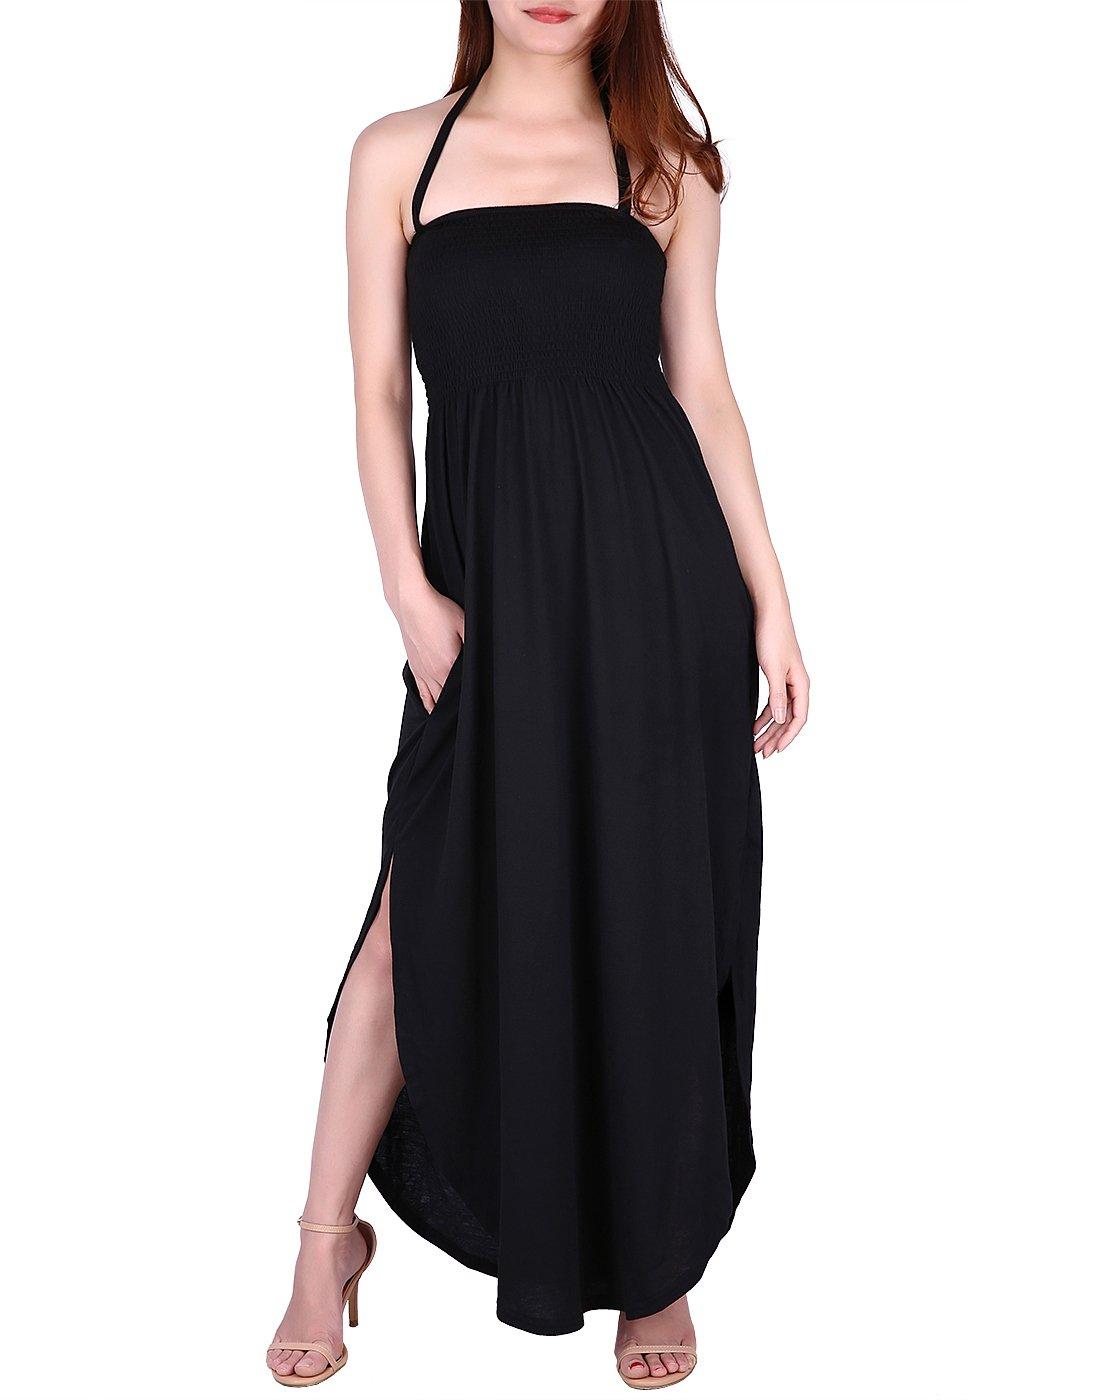 HDE Maxi Dress Plus Size - Tie Halter Neck Tube Top with Side Slit and Pockets (Black, Small)